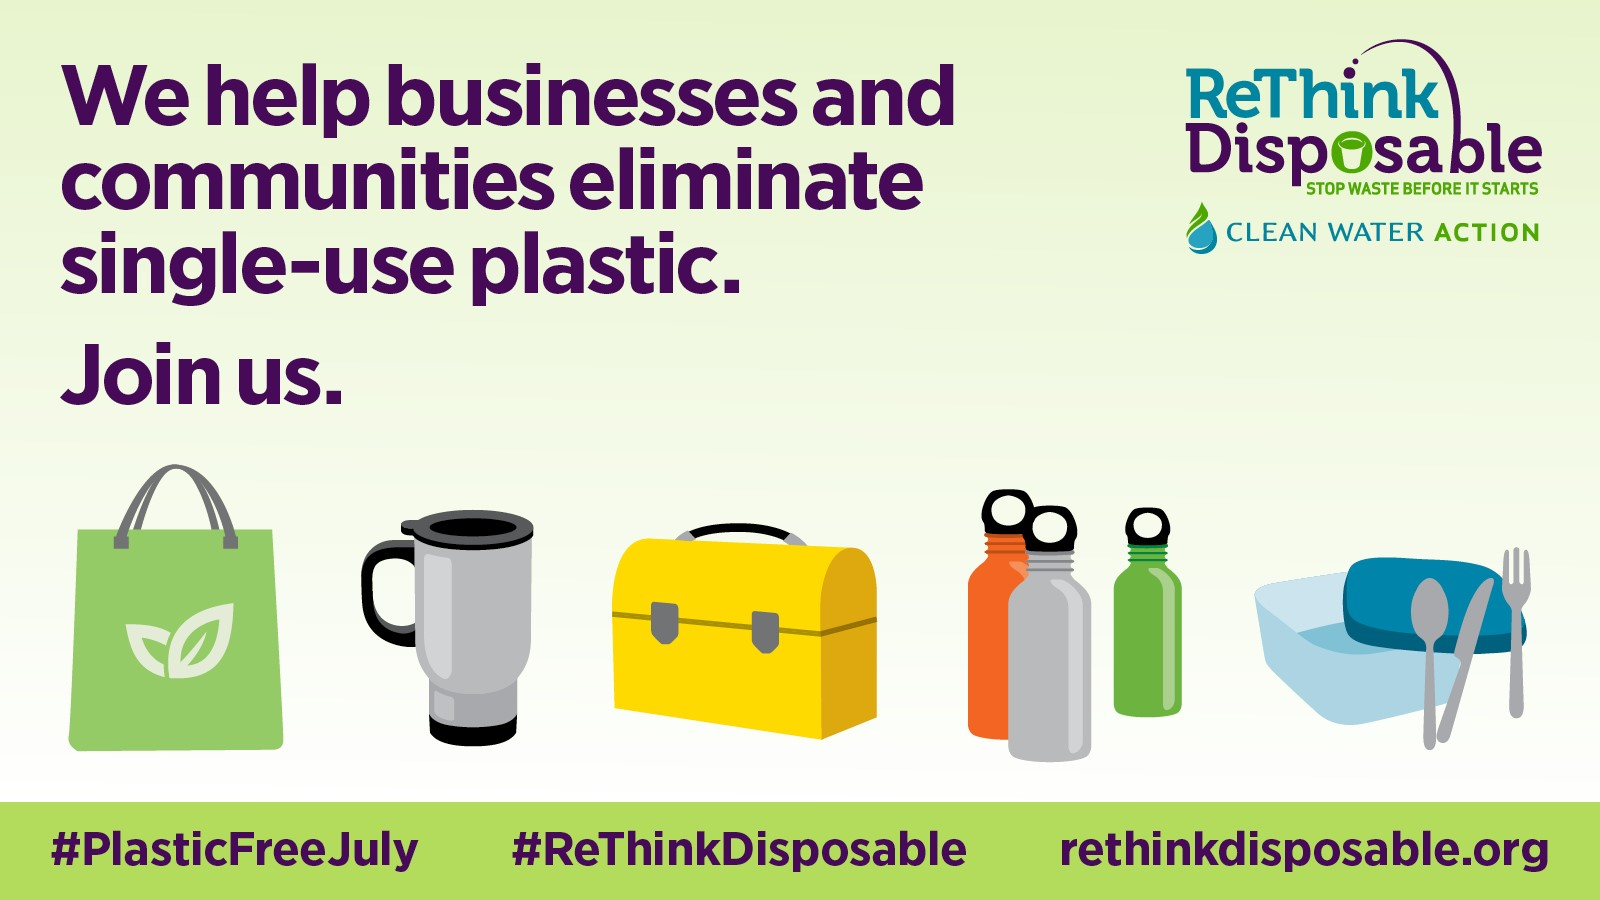 ReThink Disposable_Plastic Free July 2019_Program_Twitter.jpg